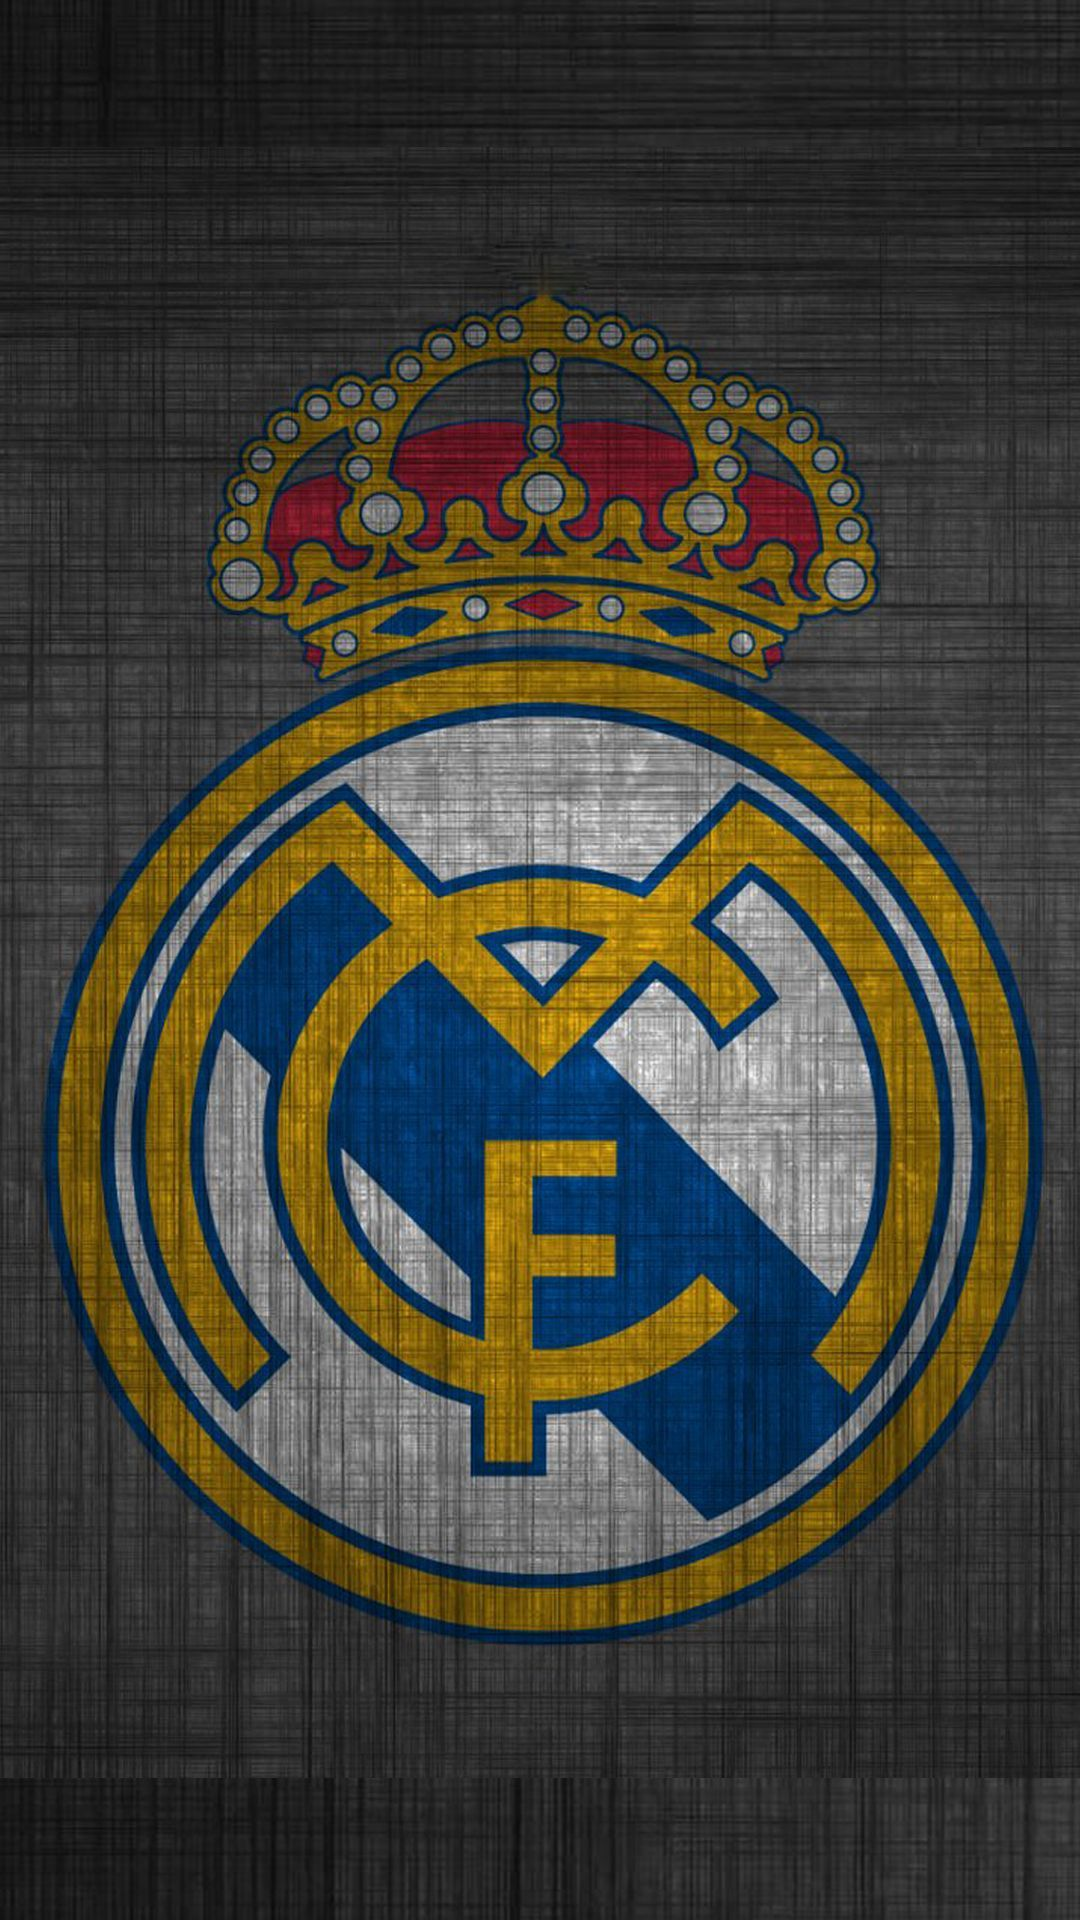 Real Madrid Wallpaper Home Screen In 2020 Real Madrid Wallpapers Madrid Wallpaper Real Madrid